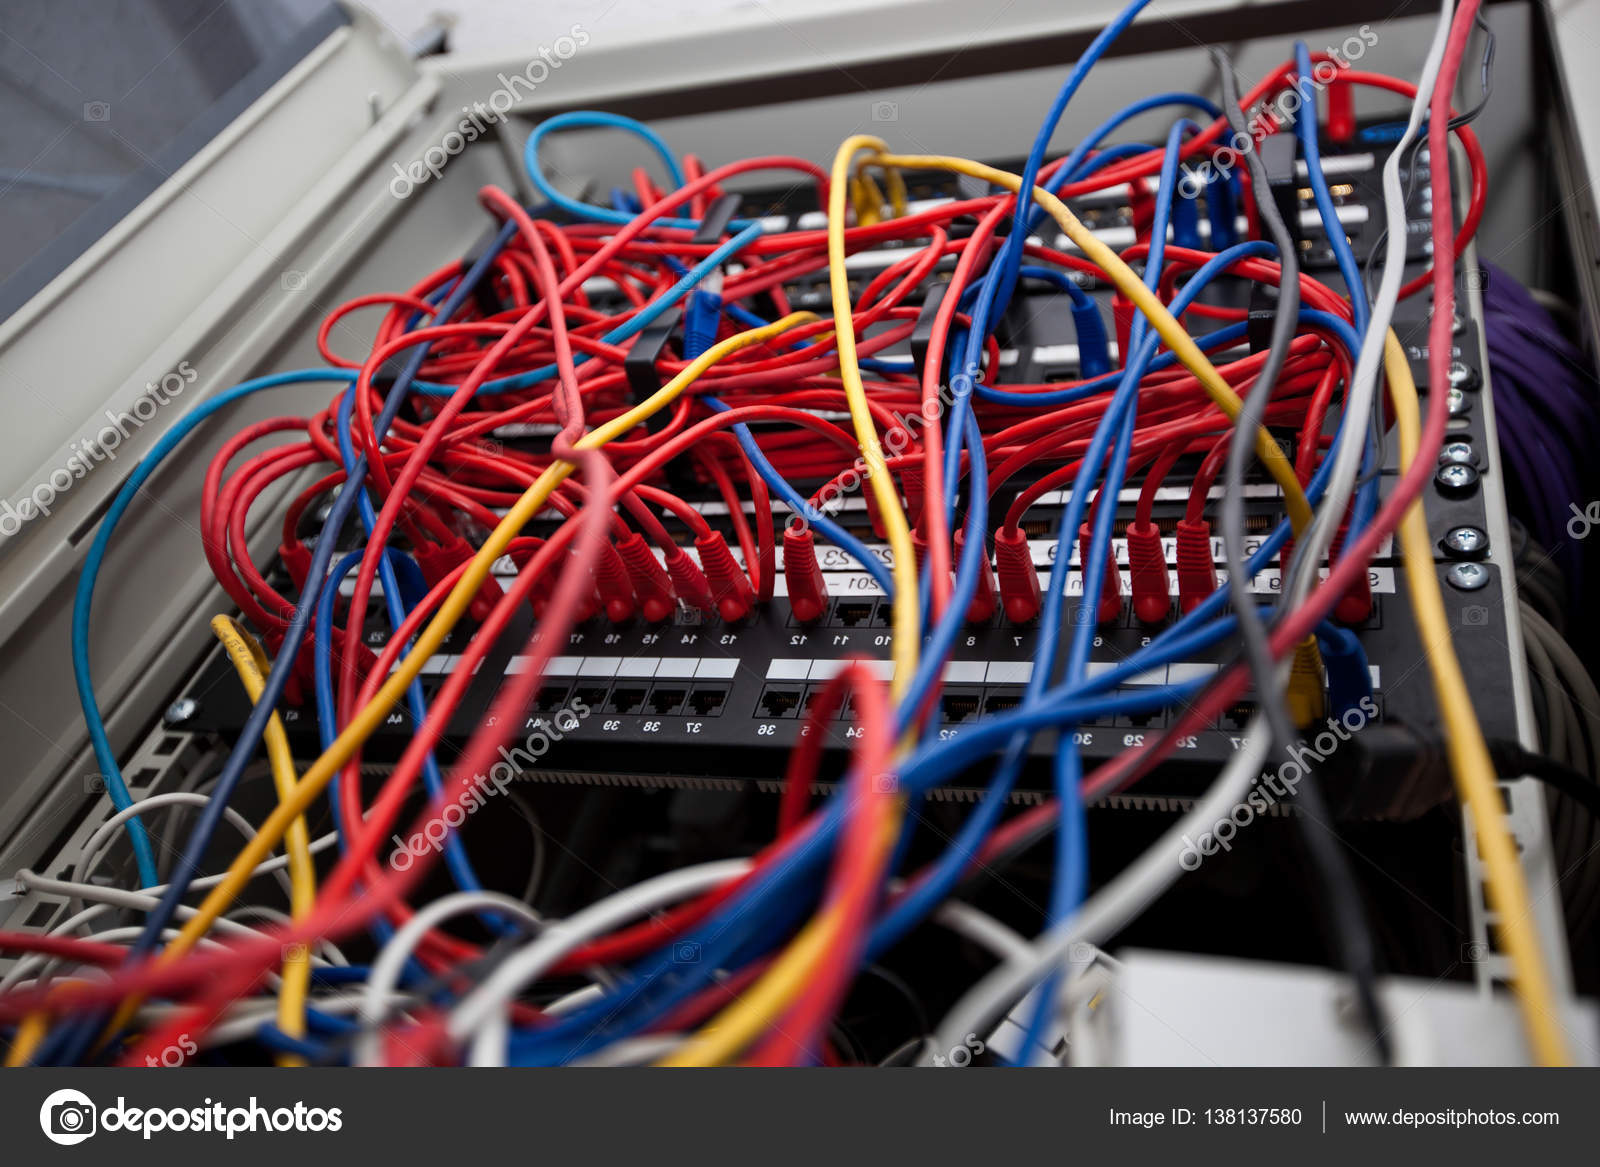 hight resolution of close up view of tangled wires in server room at television station photo by londondeposit